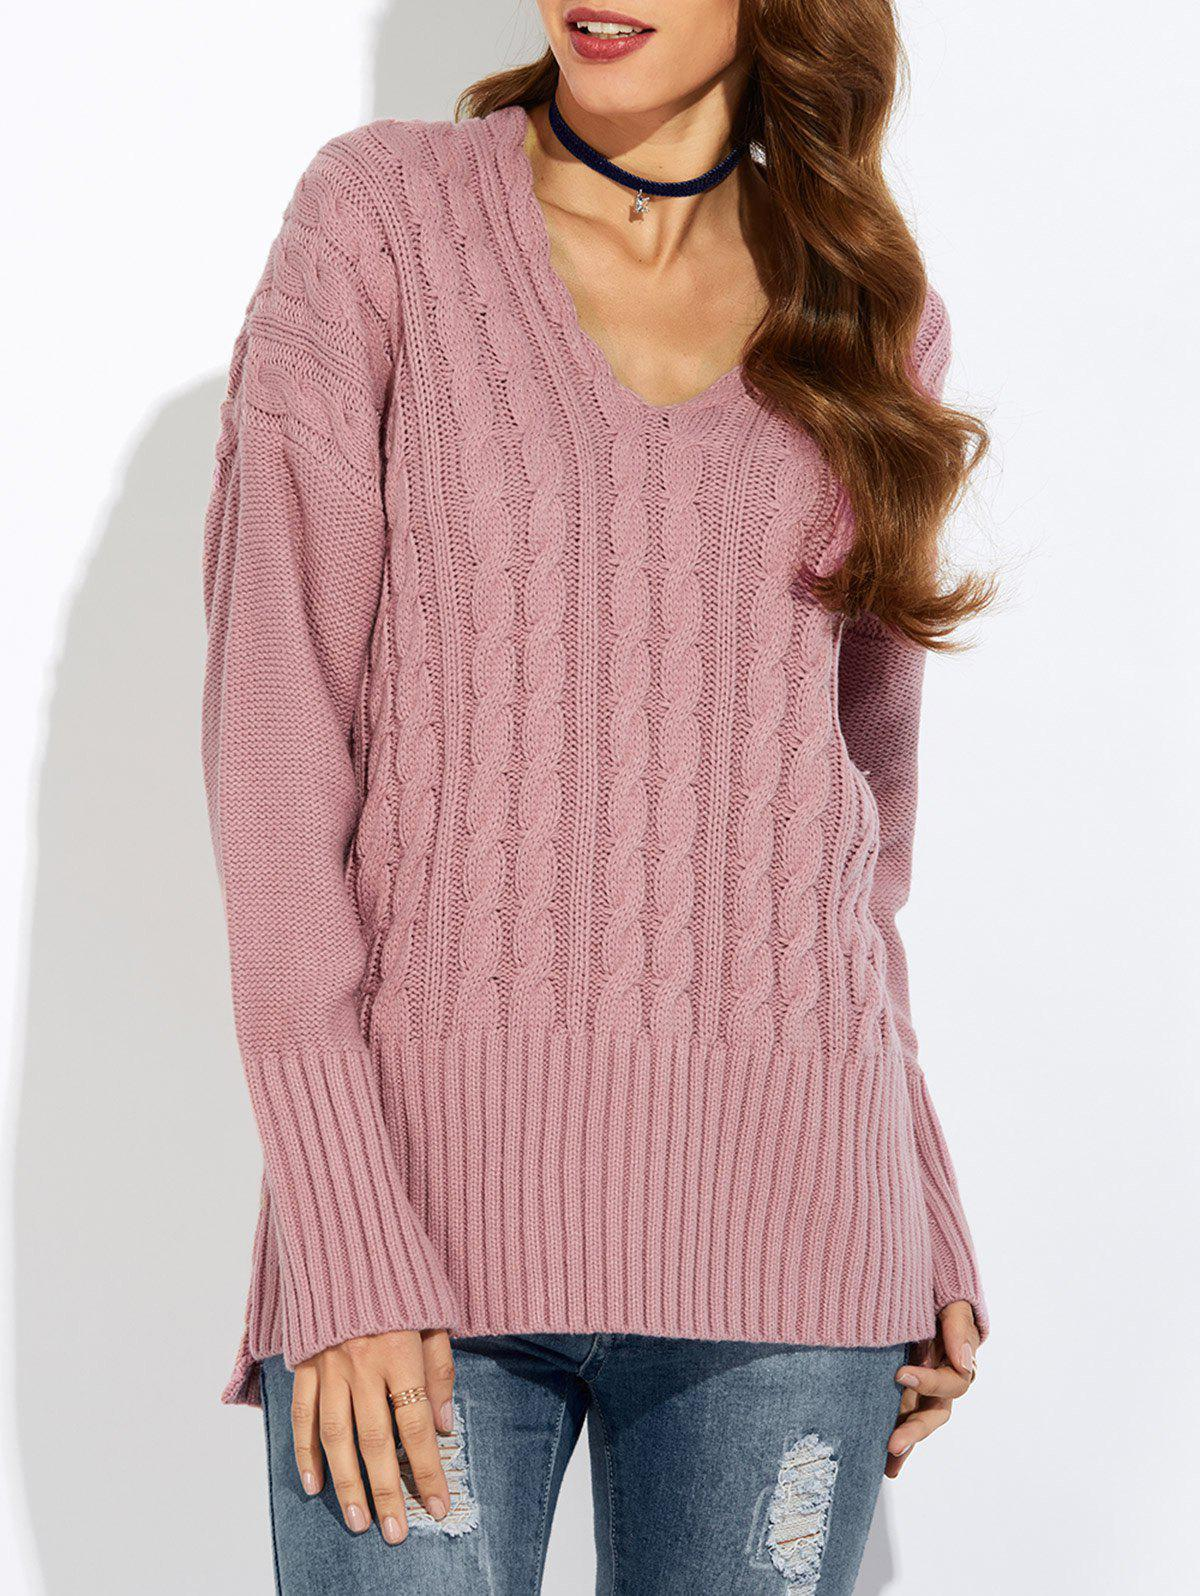 V Neck Drop Shoulder Pullover Cable Knit Sweater grey off shoulder pullover knit sweater